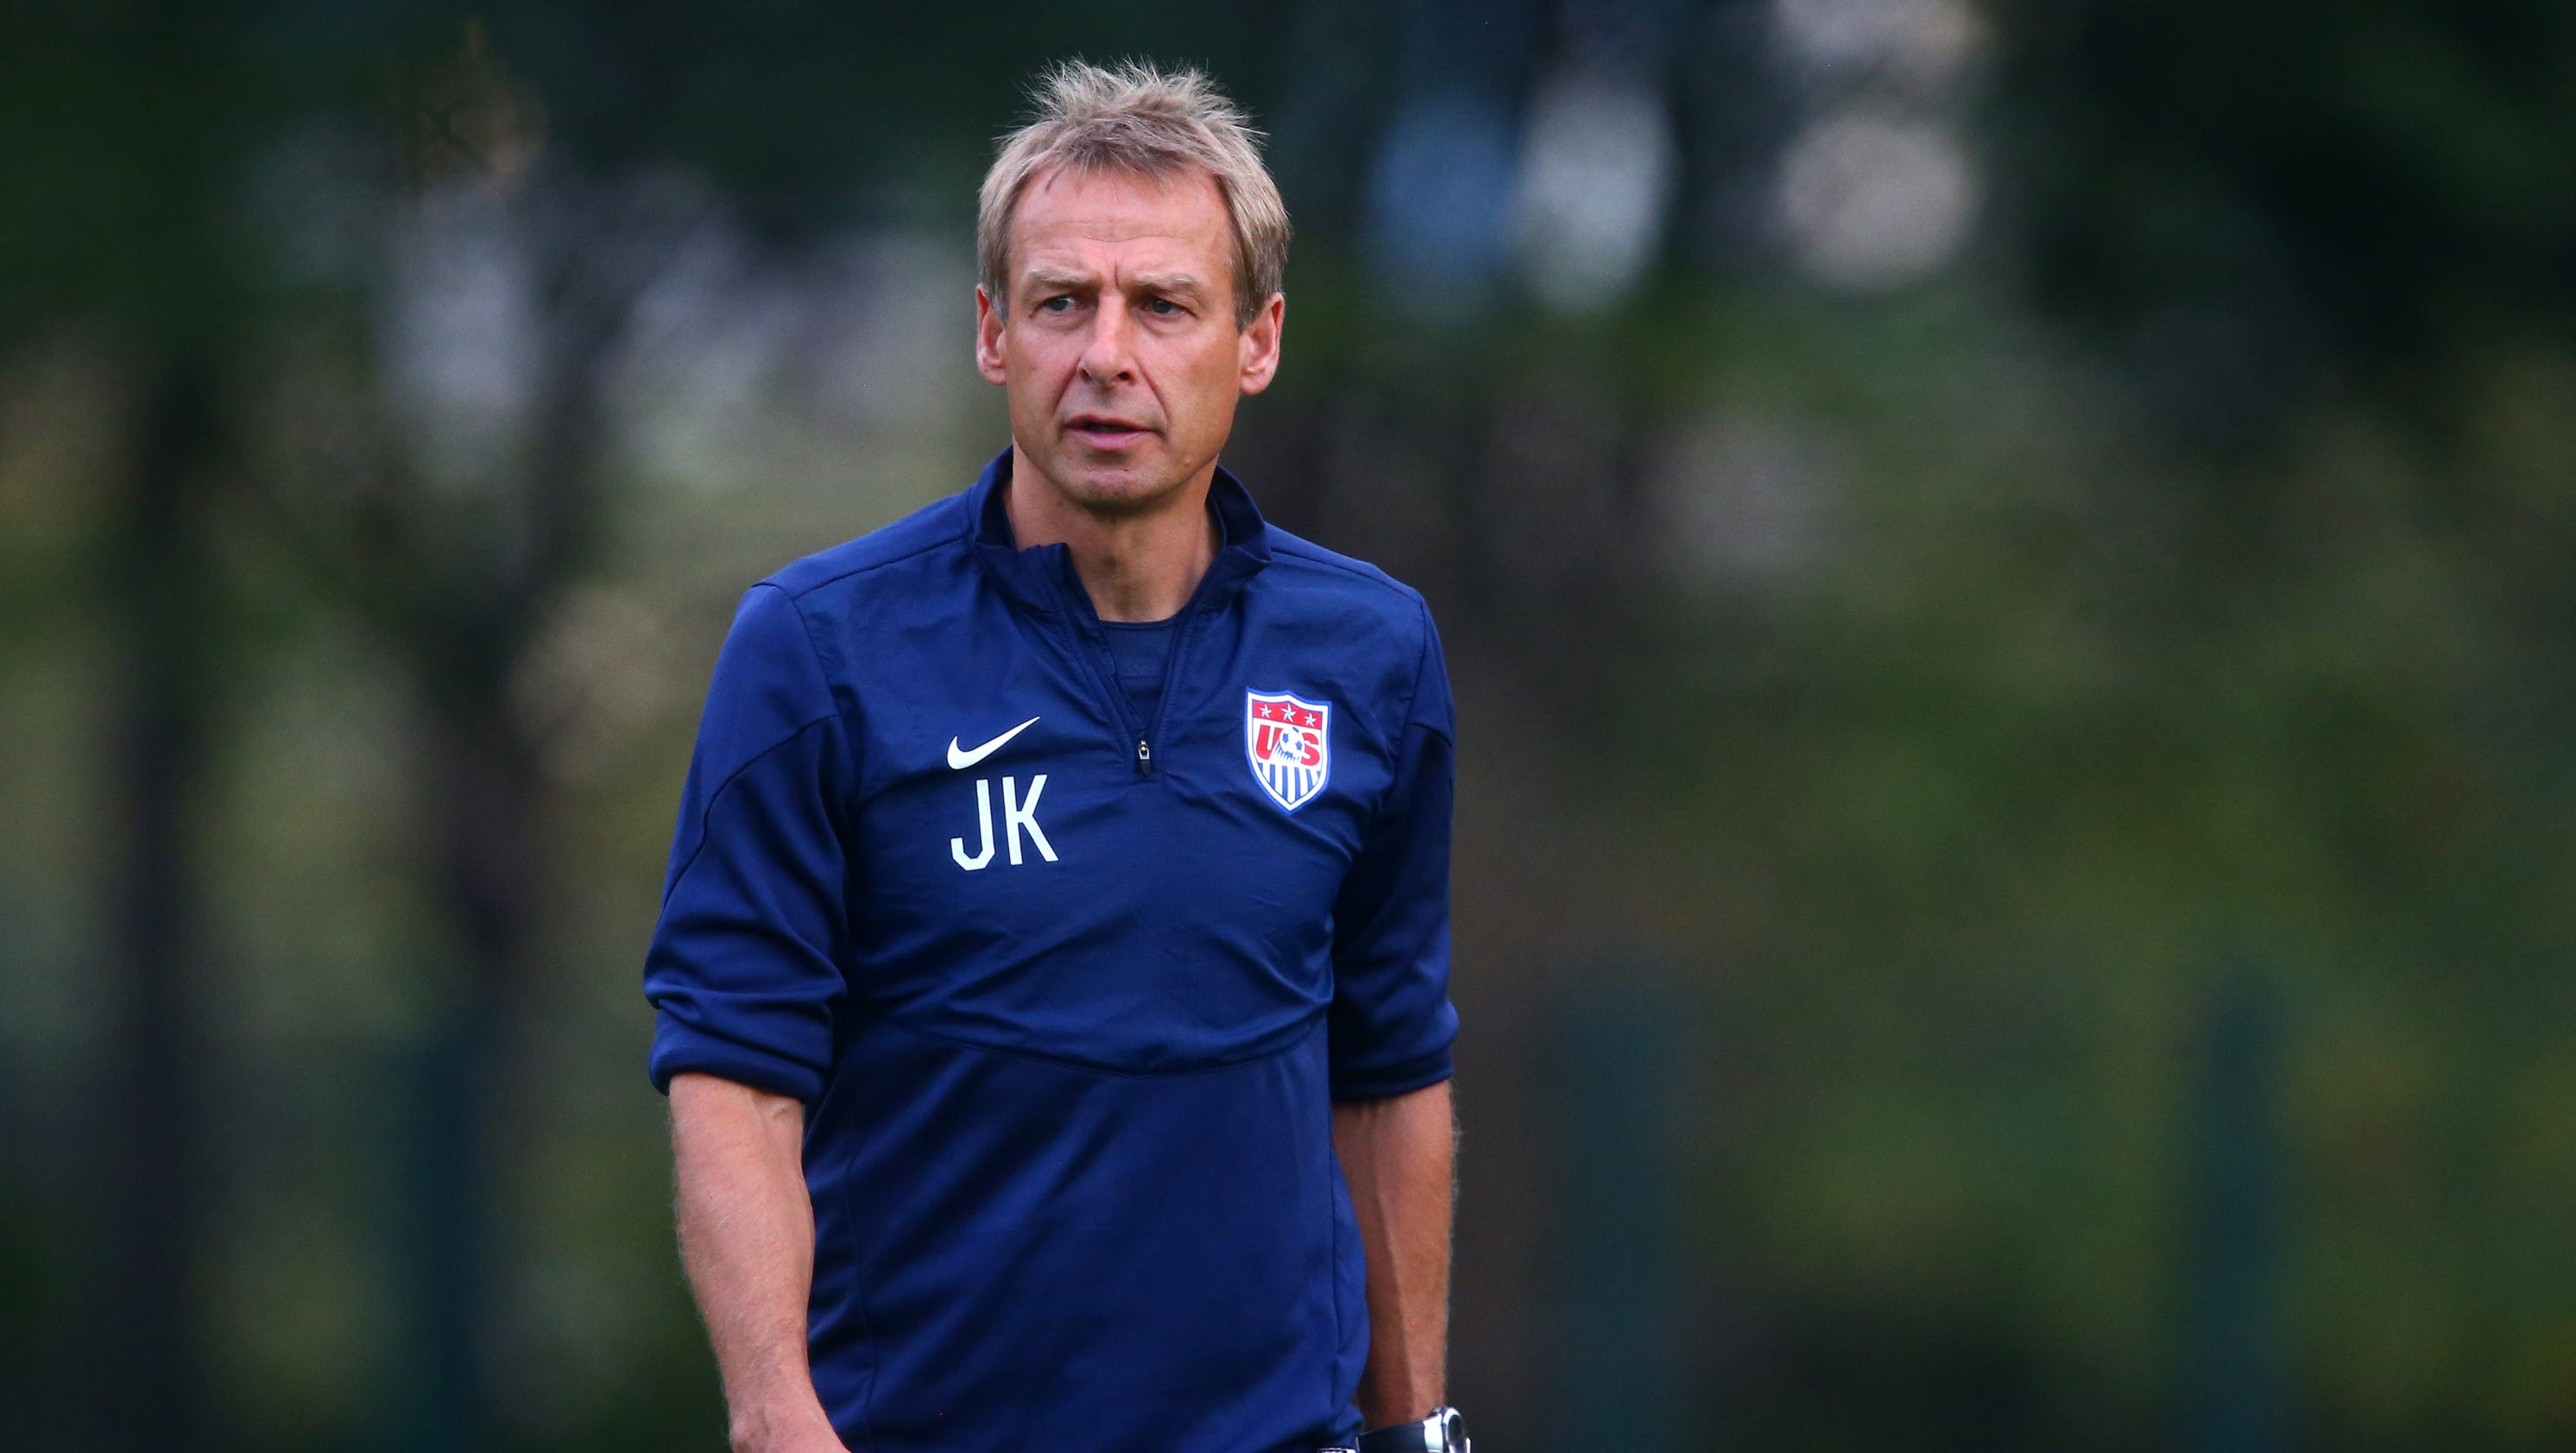 jurgen klinsmann - photo #22